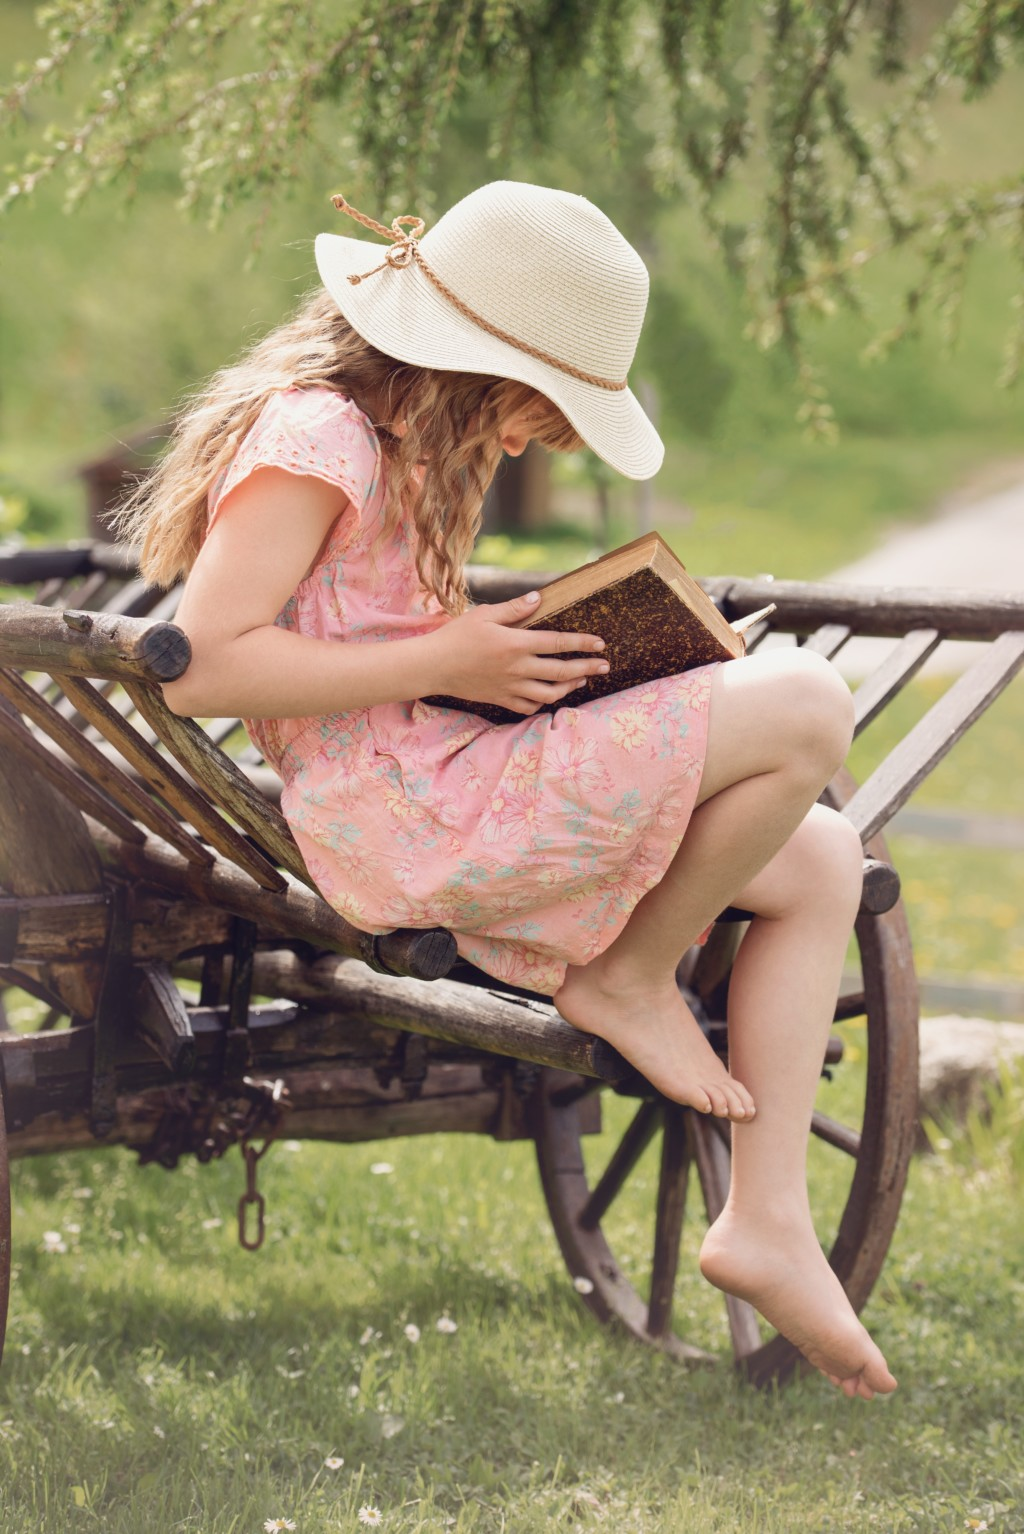 Leisurely Summer Reading Childs Play >> Summer Reading A Gift Not A Chore